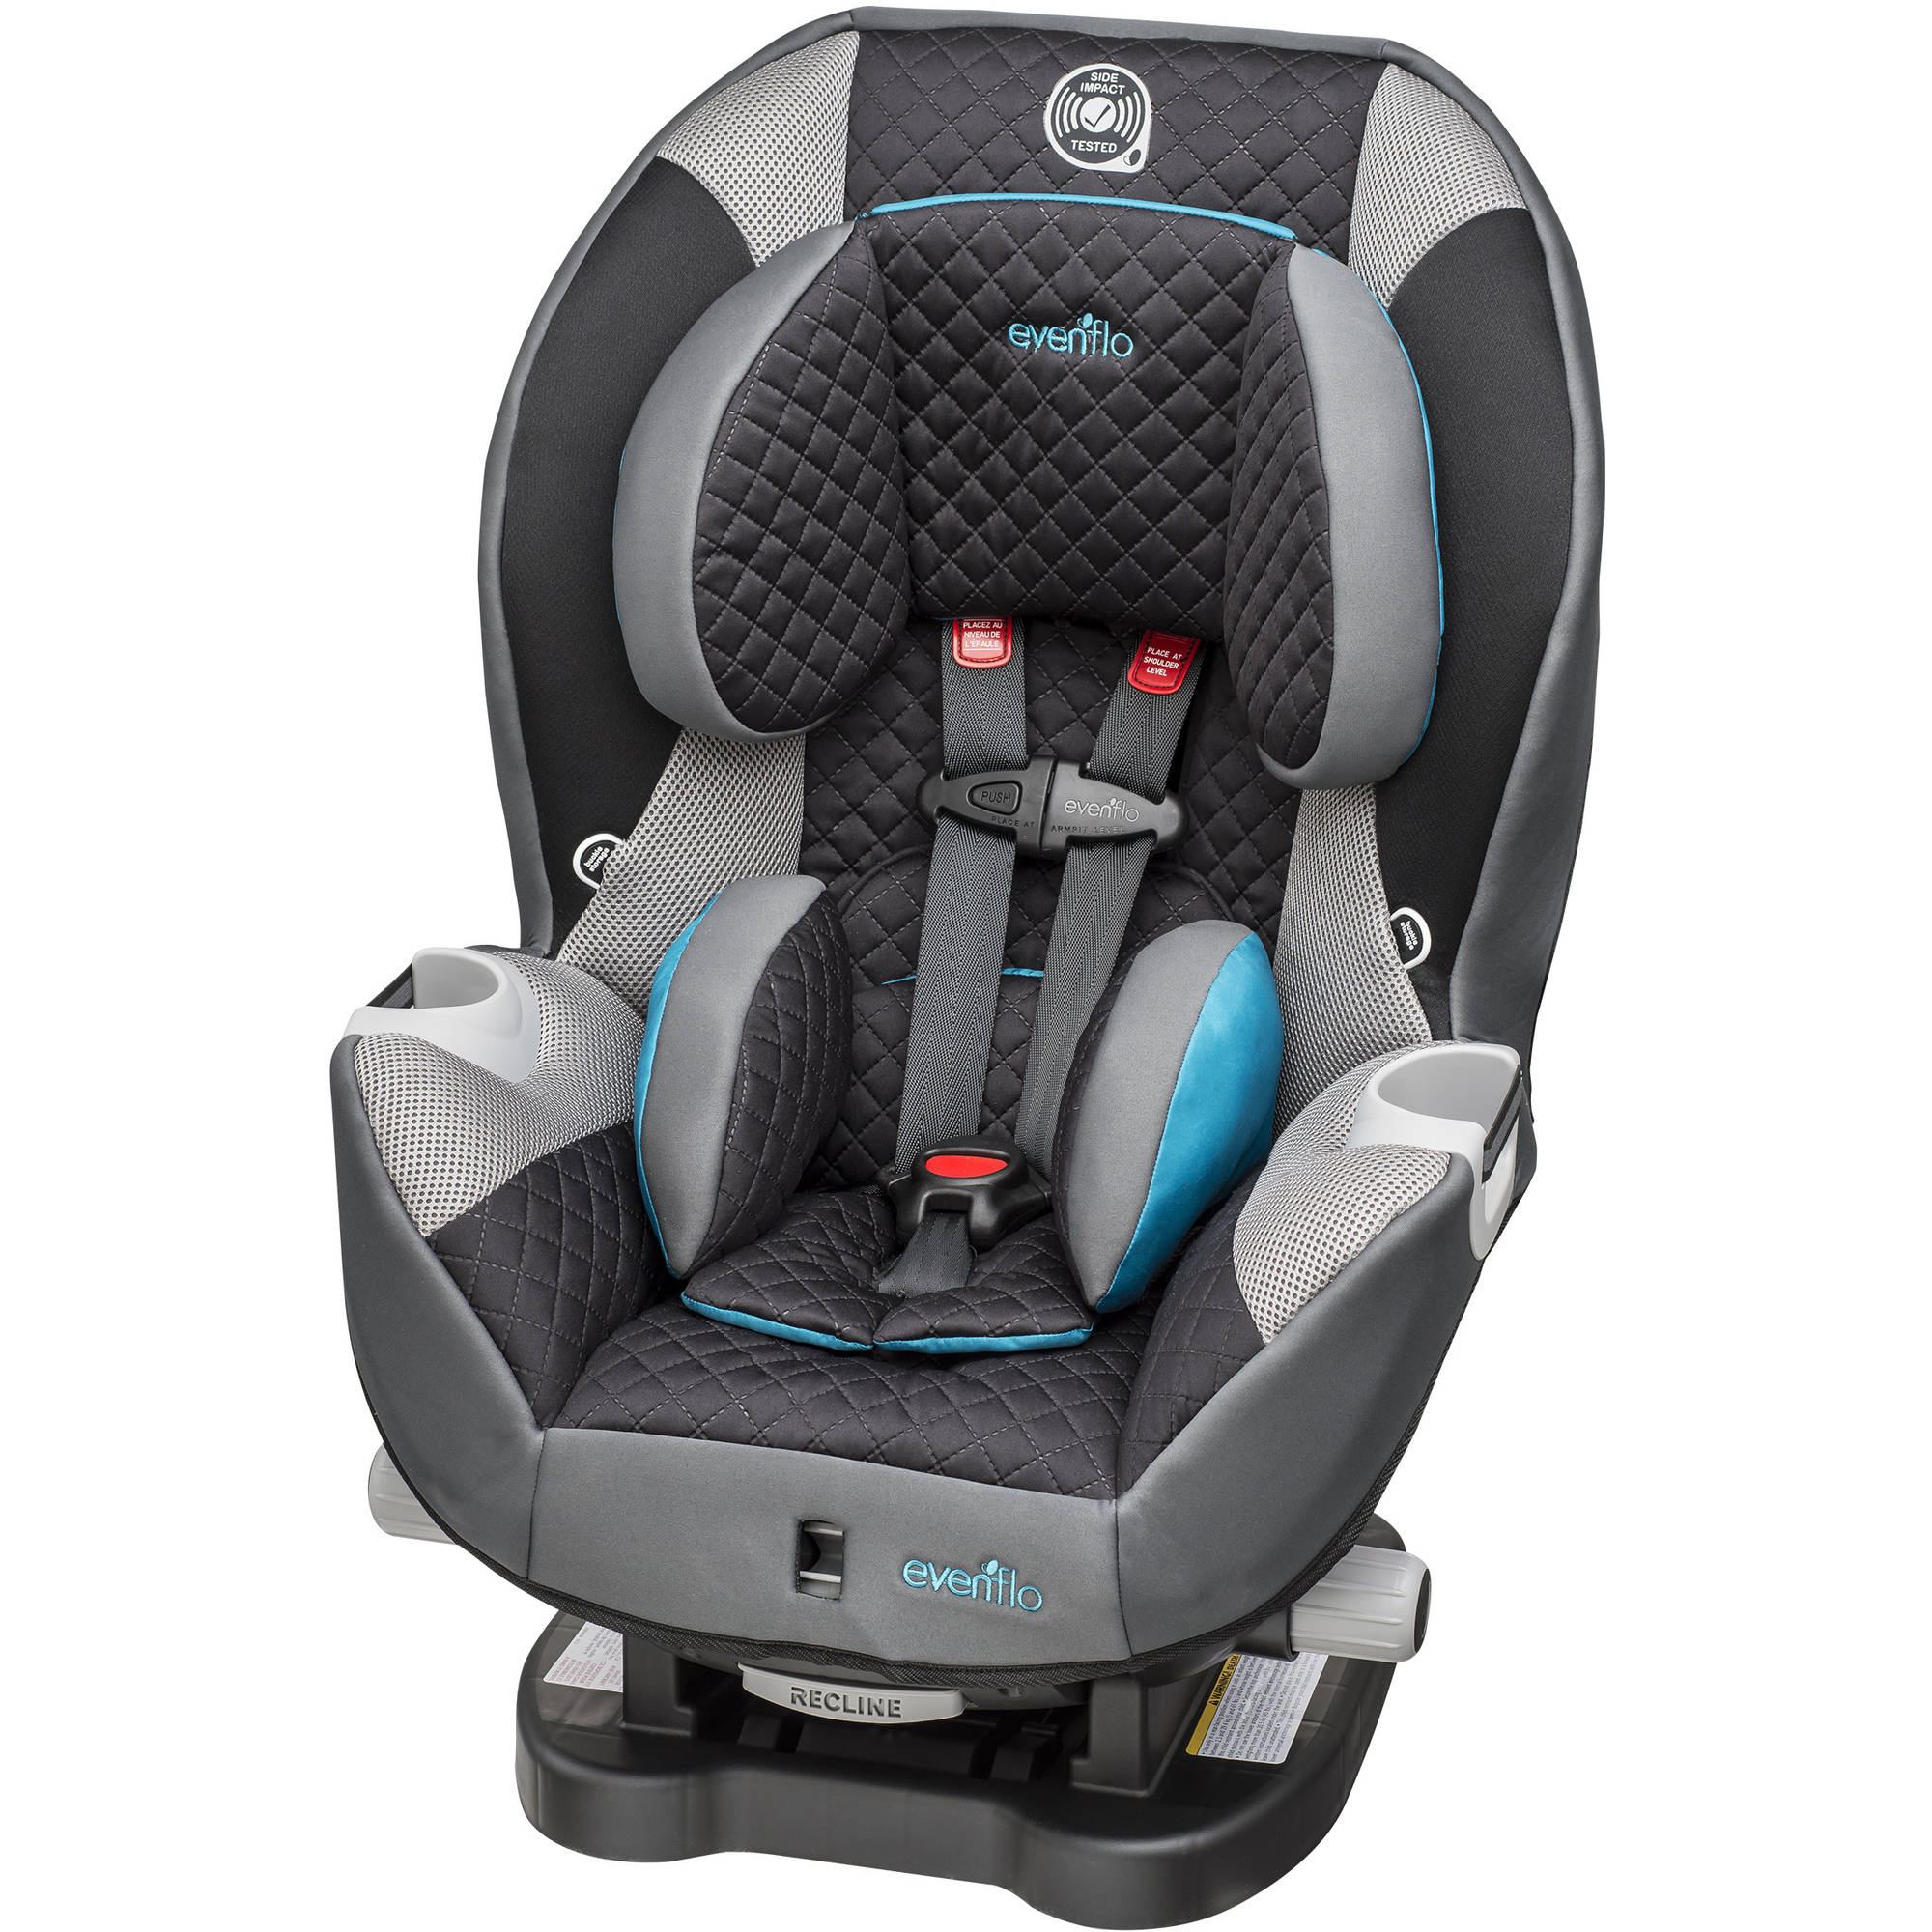 Evenflo Advanced Triumph LX Convertible Car Seat, Choose your color